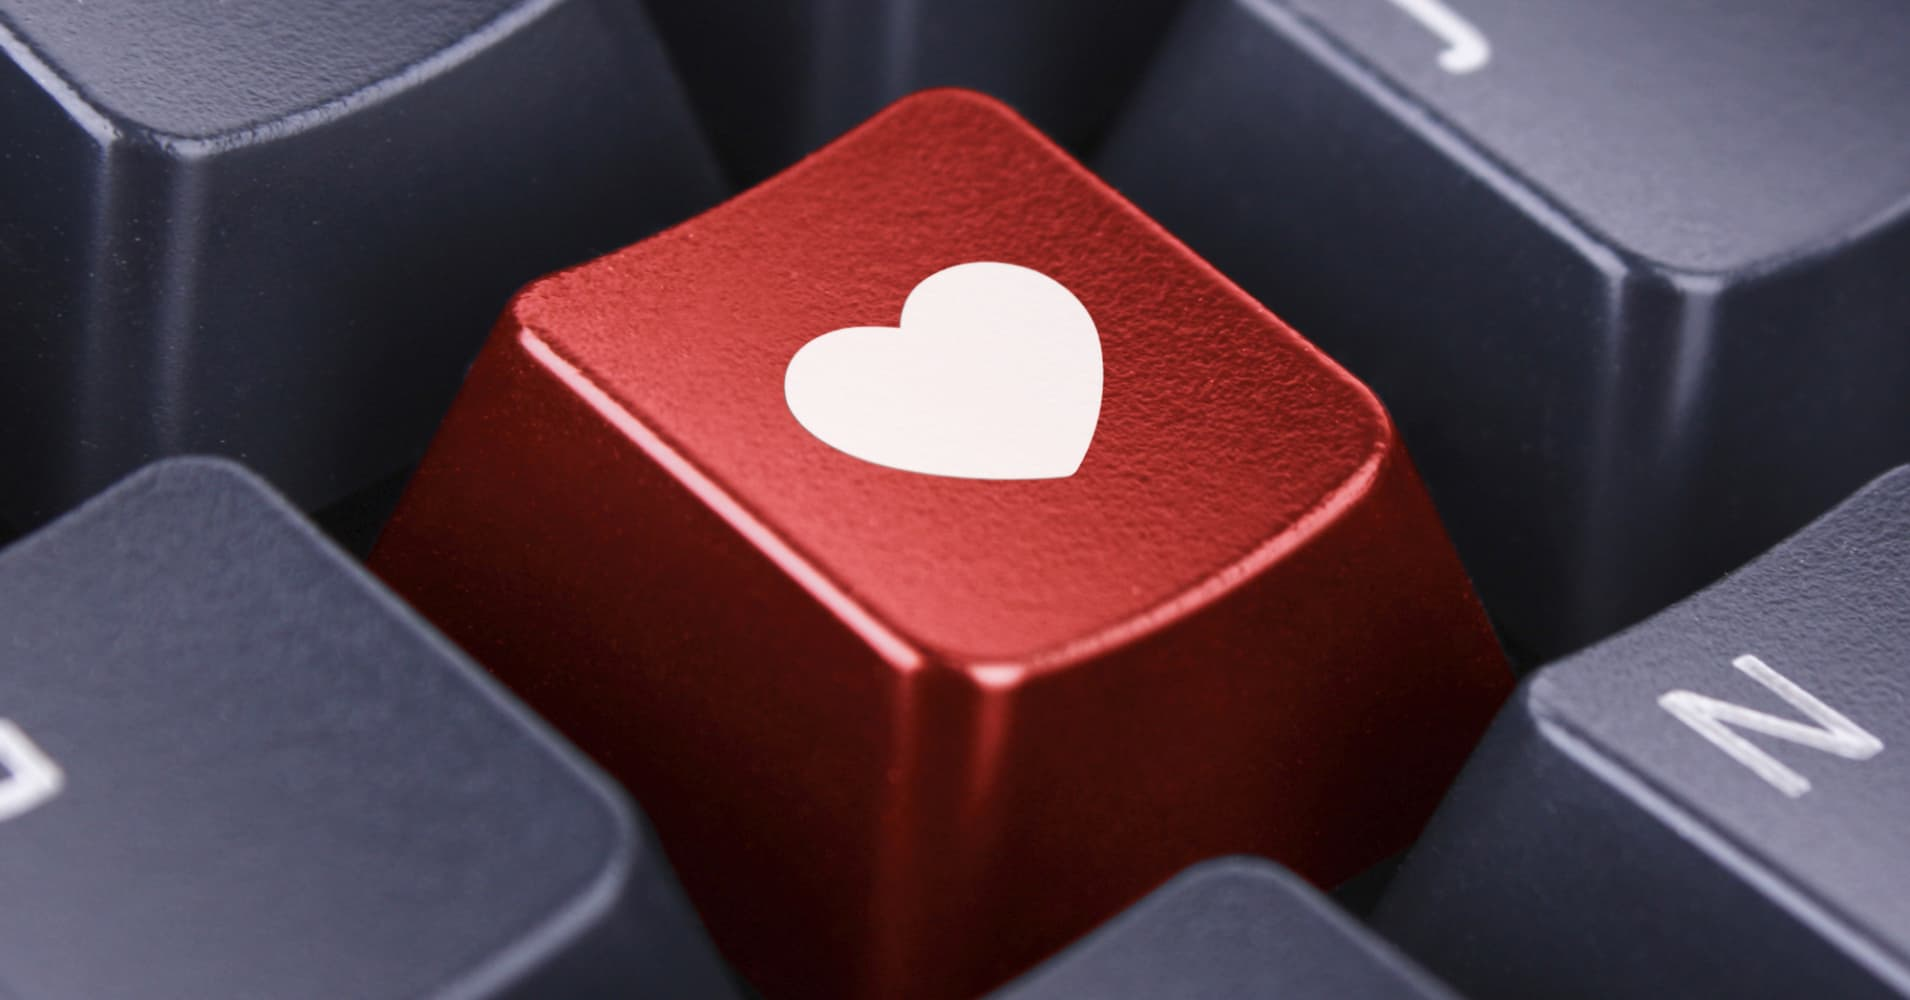 dating site stocks Niche dating sites crop up all the time now, one that launched to cater to the kind of people who grow crops—farmersonlycom—has reached a milestone.